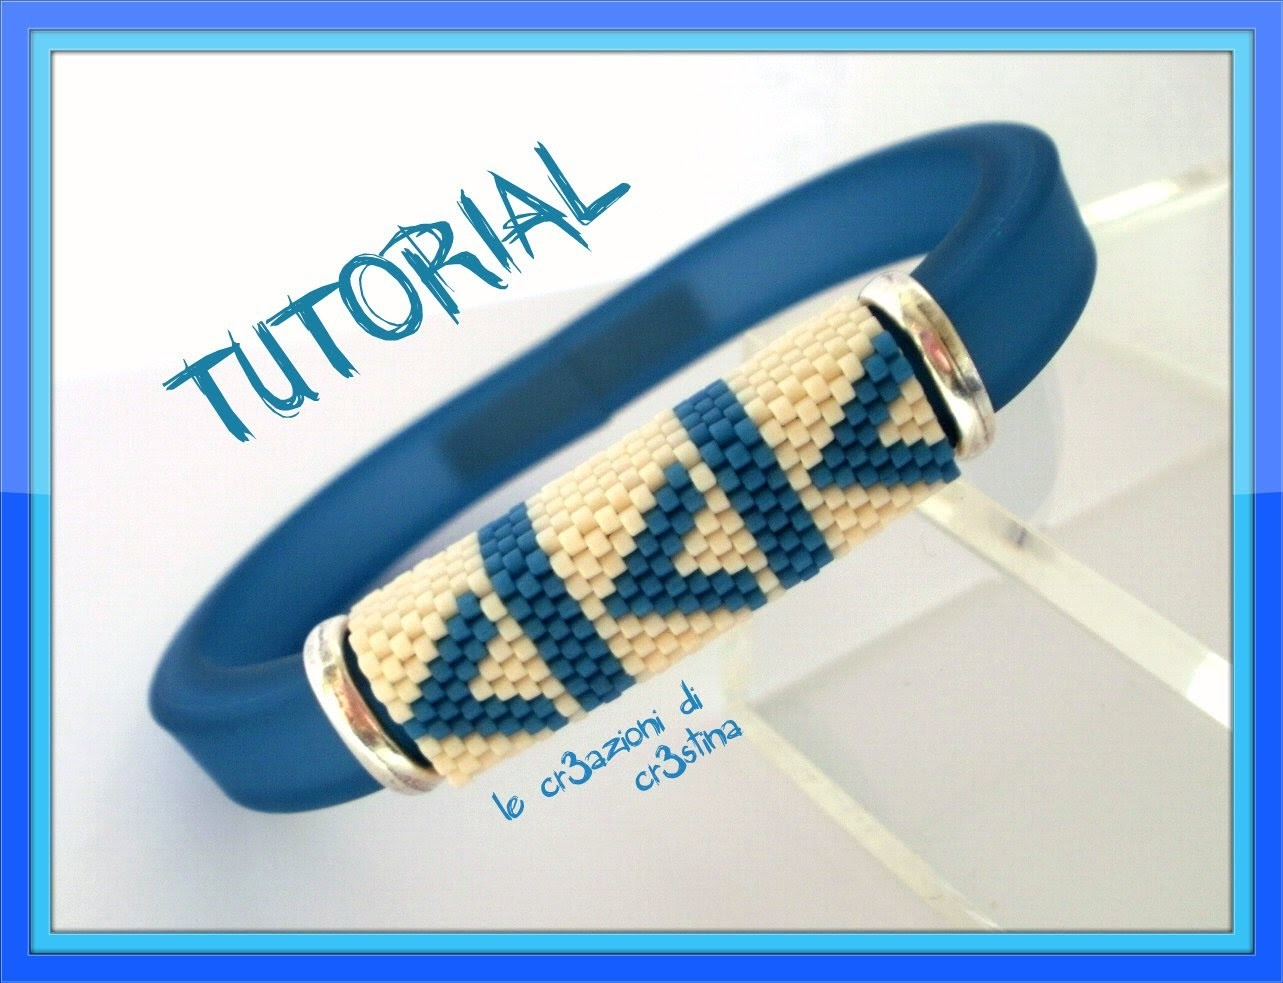 Tutorial Bracciale da Uomo con Regaliz in Plastica e Fascia in Peyote Dispari - DIY Bracelet for Men